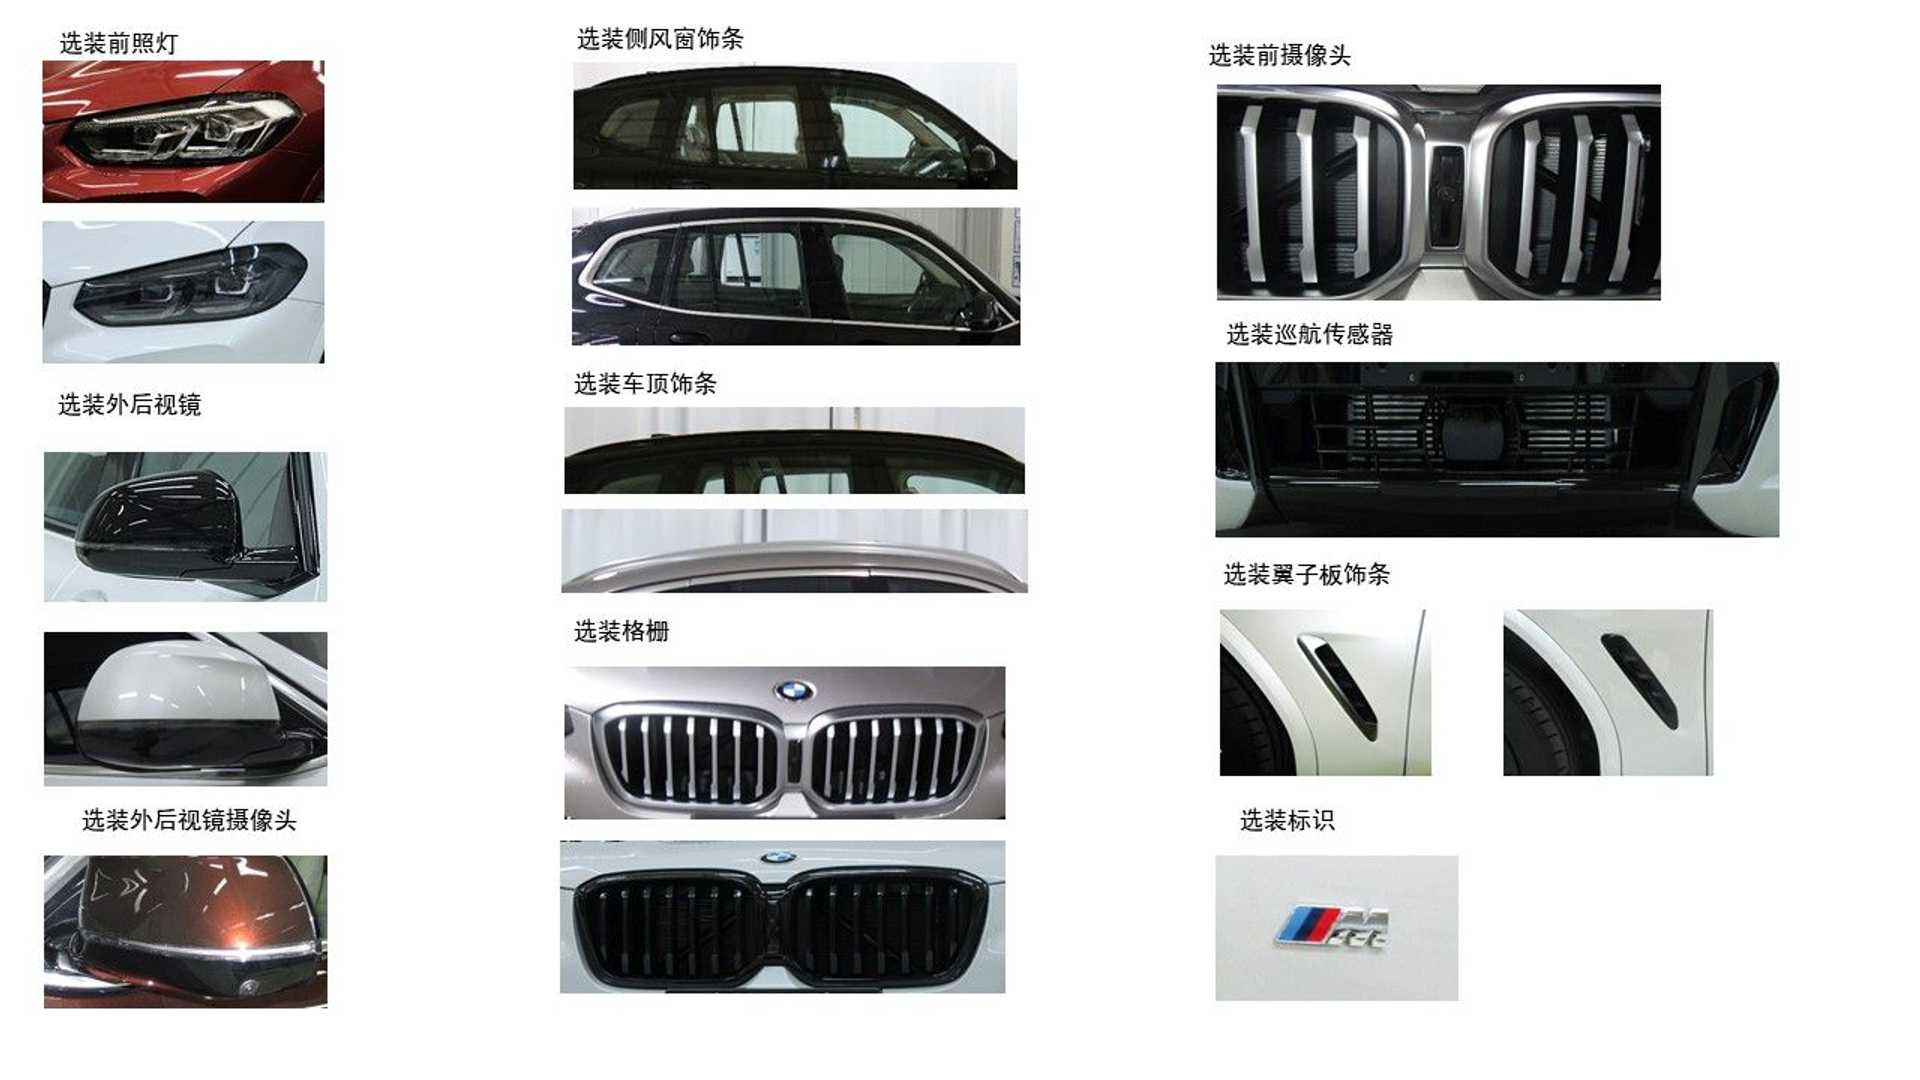 2022-bmw-x3-facelift-homologated-in-china-2